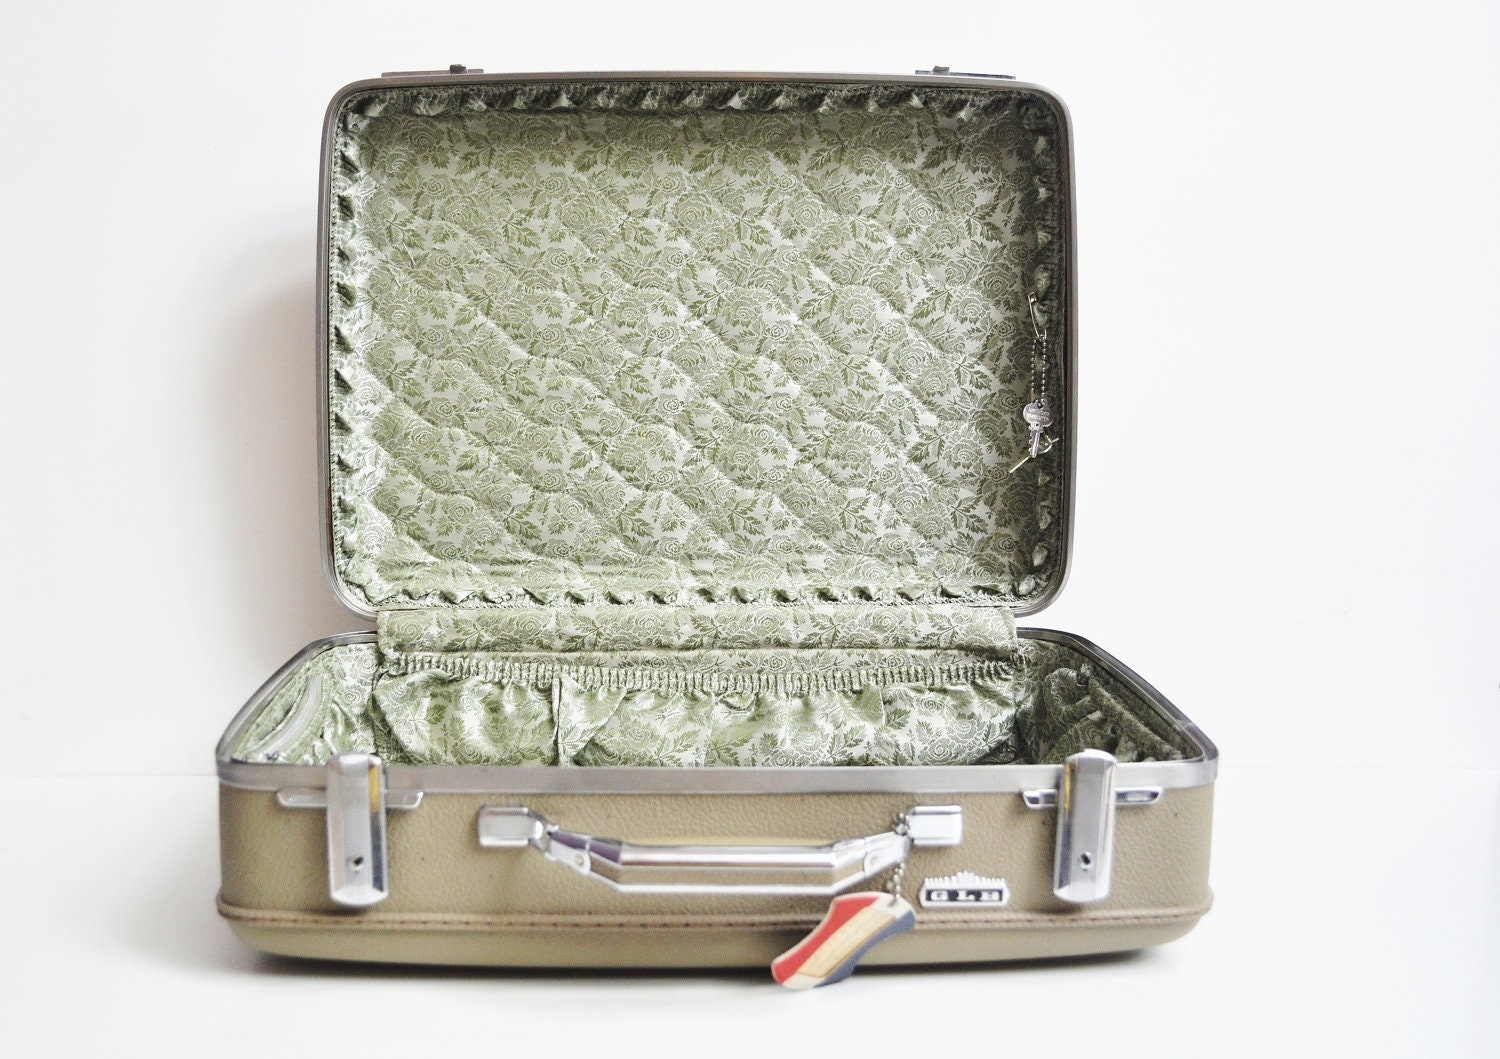 American Tourister Tiara Suitcase - Grey/Beige - thewhitepepper